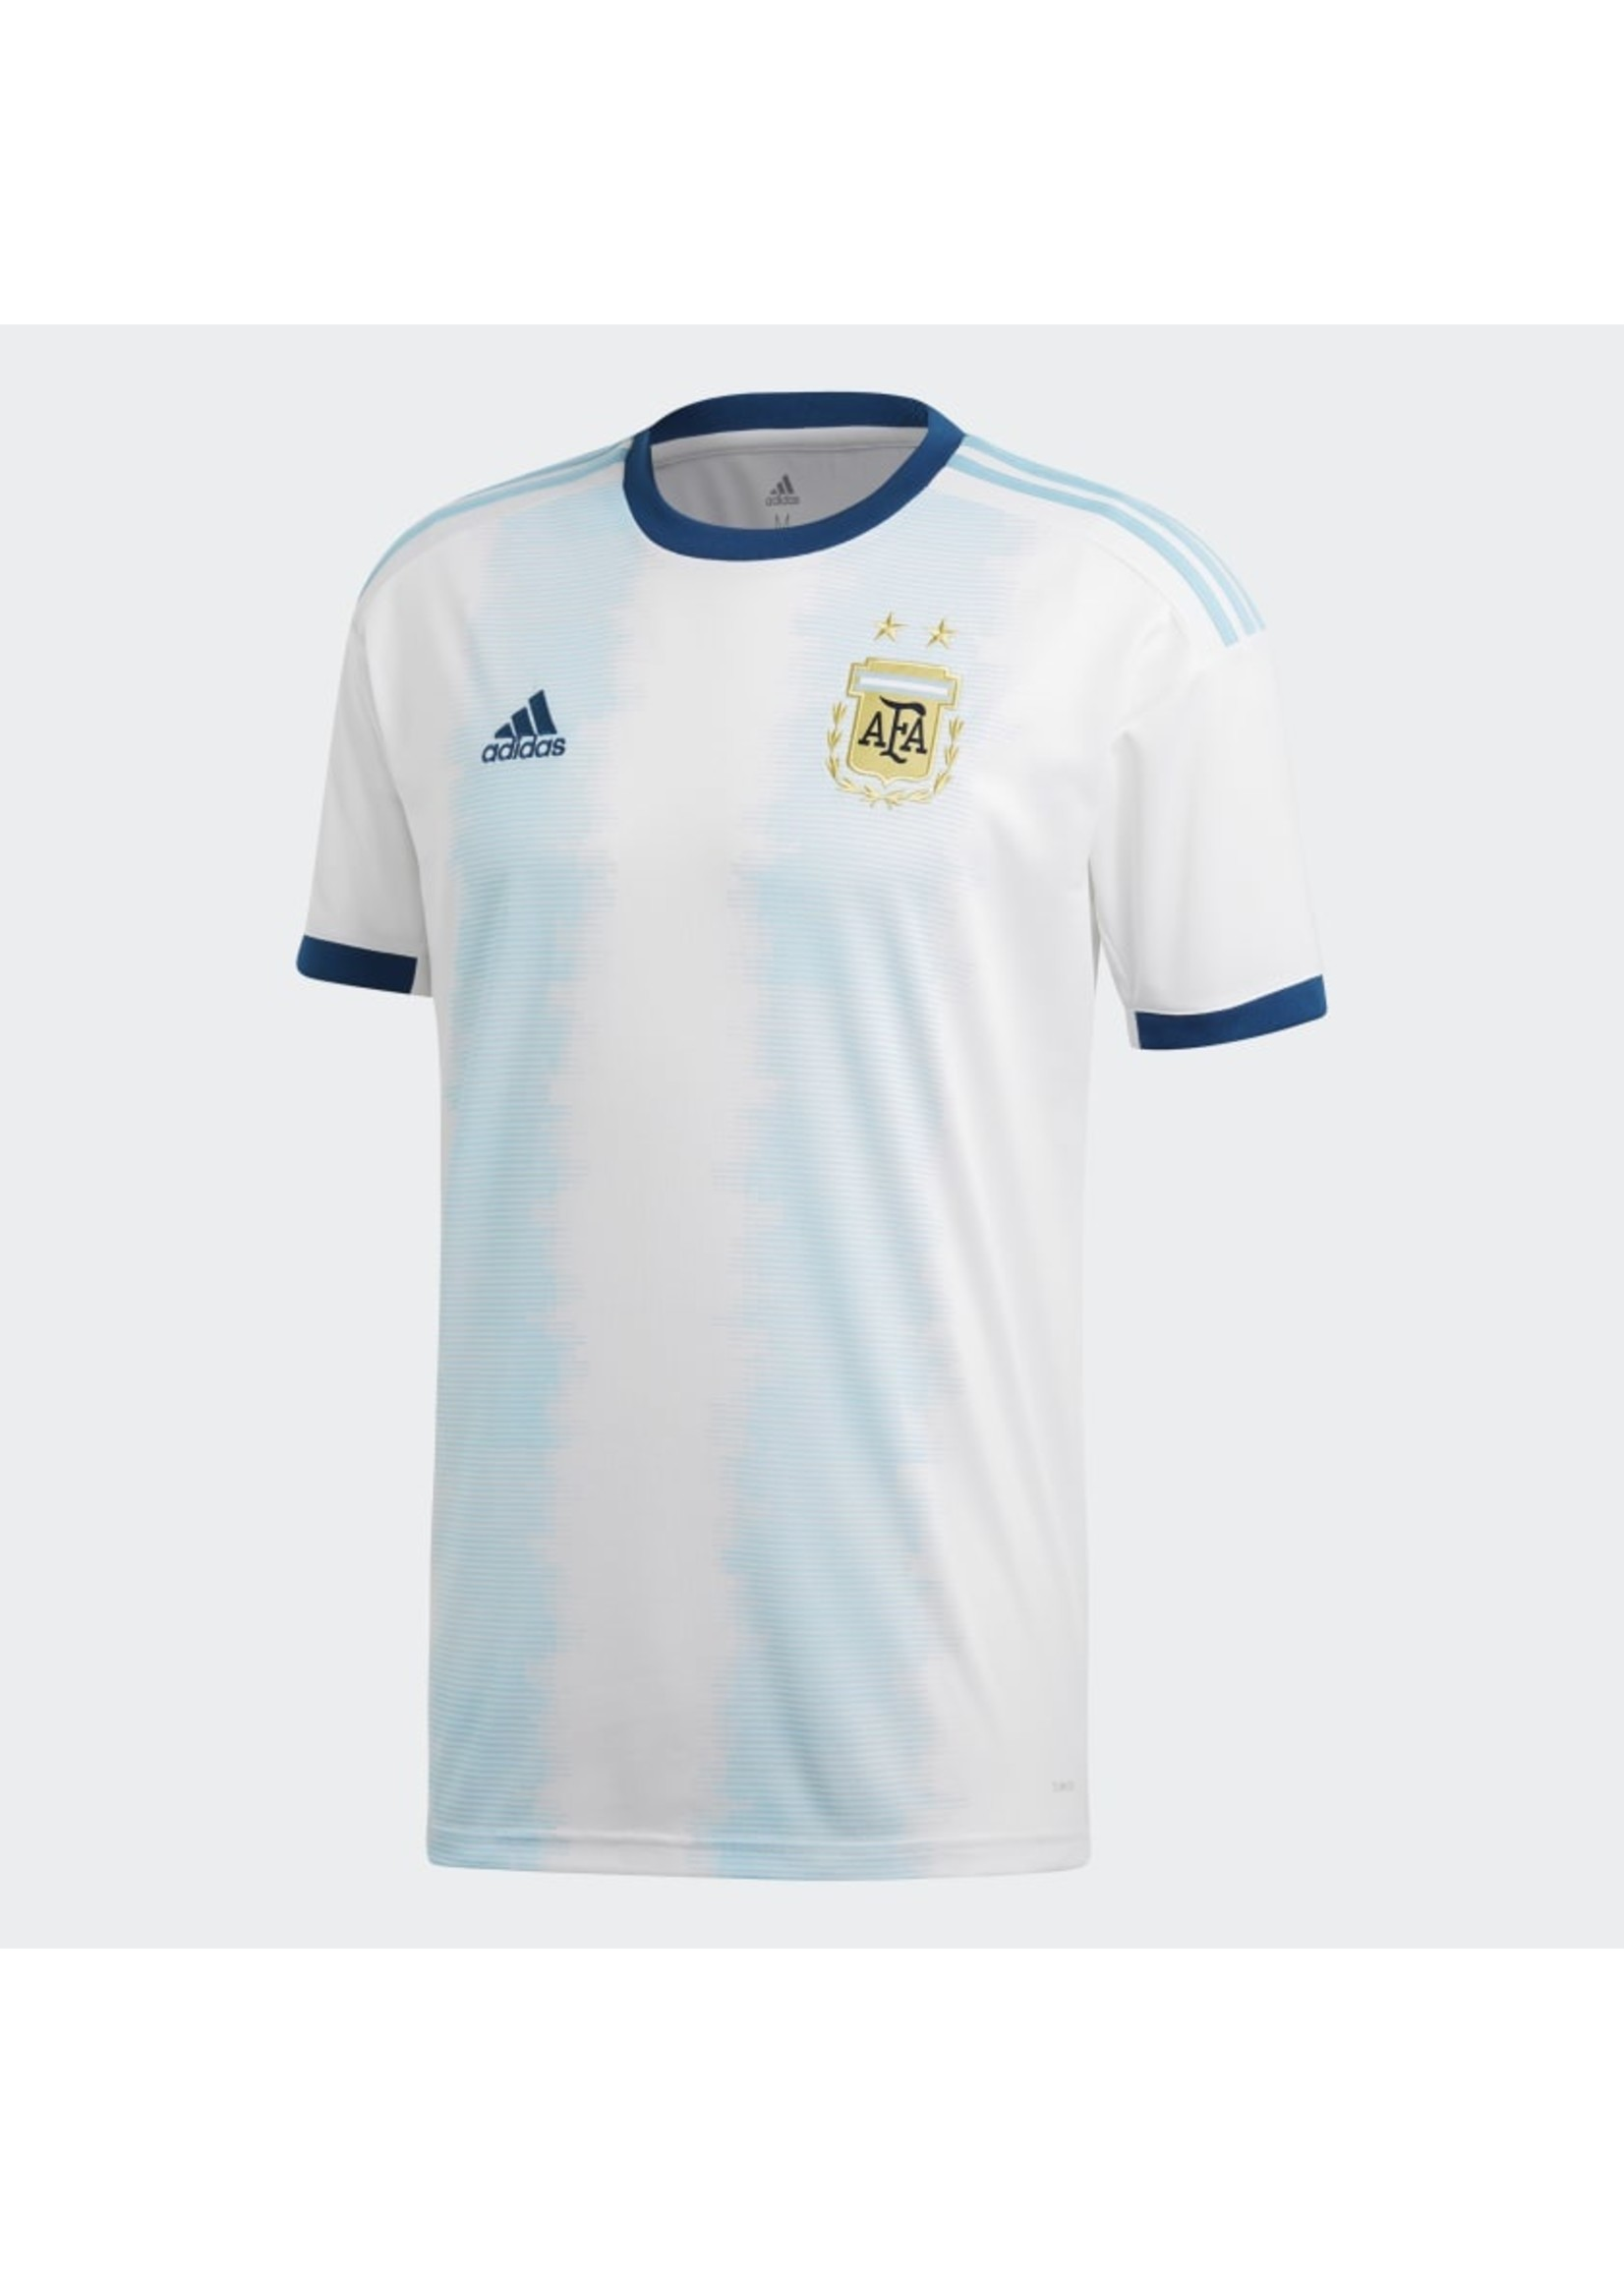 Adidas Argentina 19/20 Home Jersey Adult